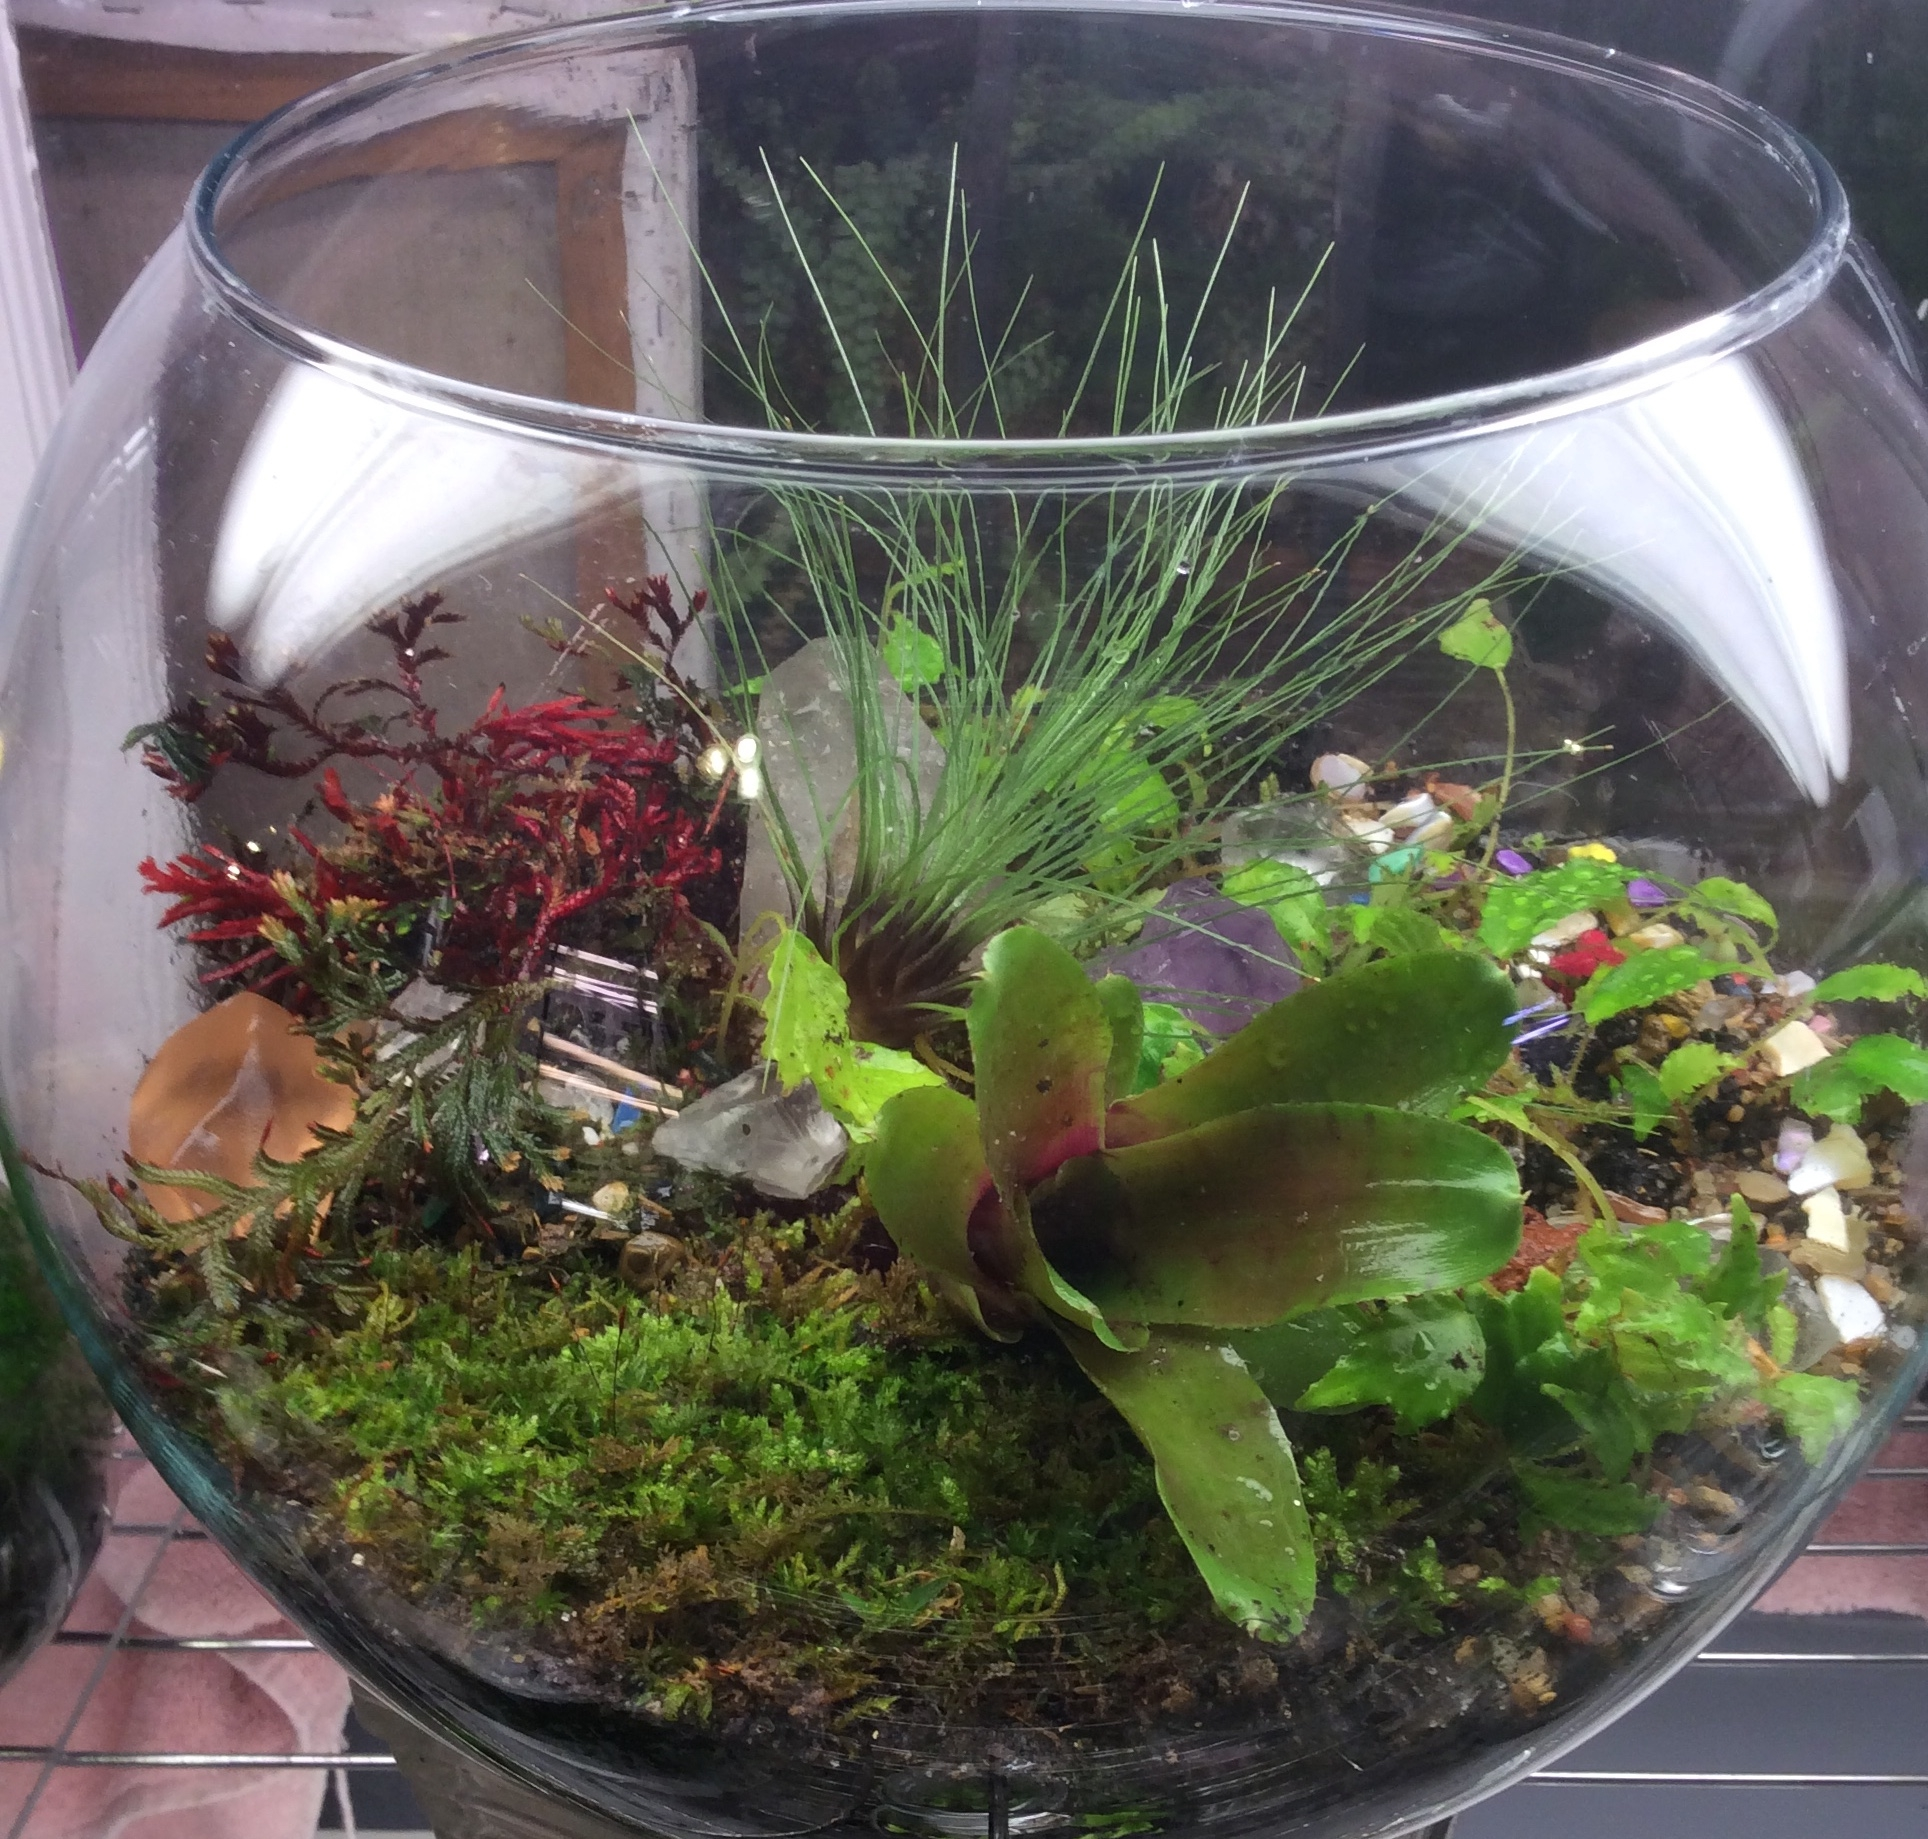 Build Your Own Terrarium March 10 and 11, 2018